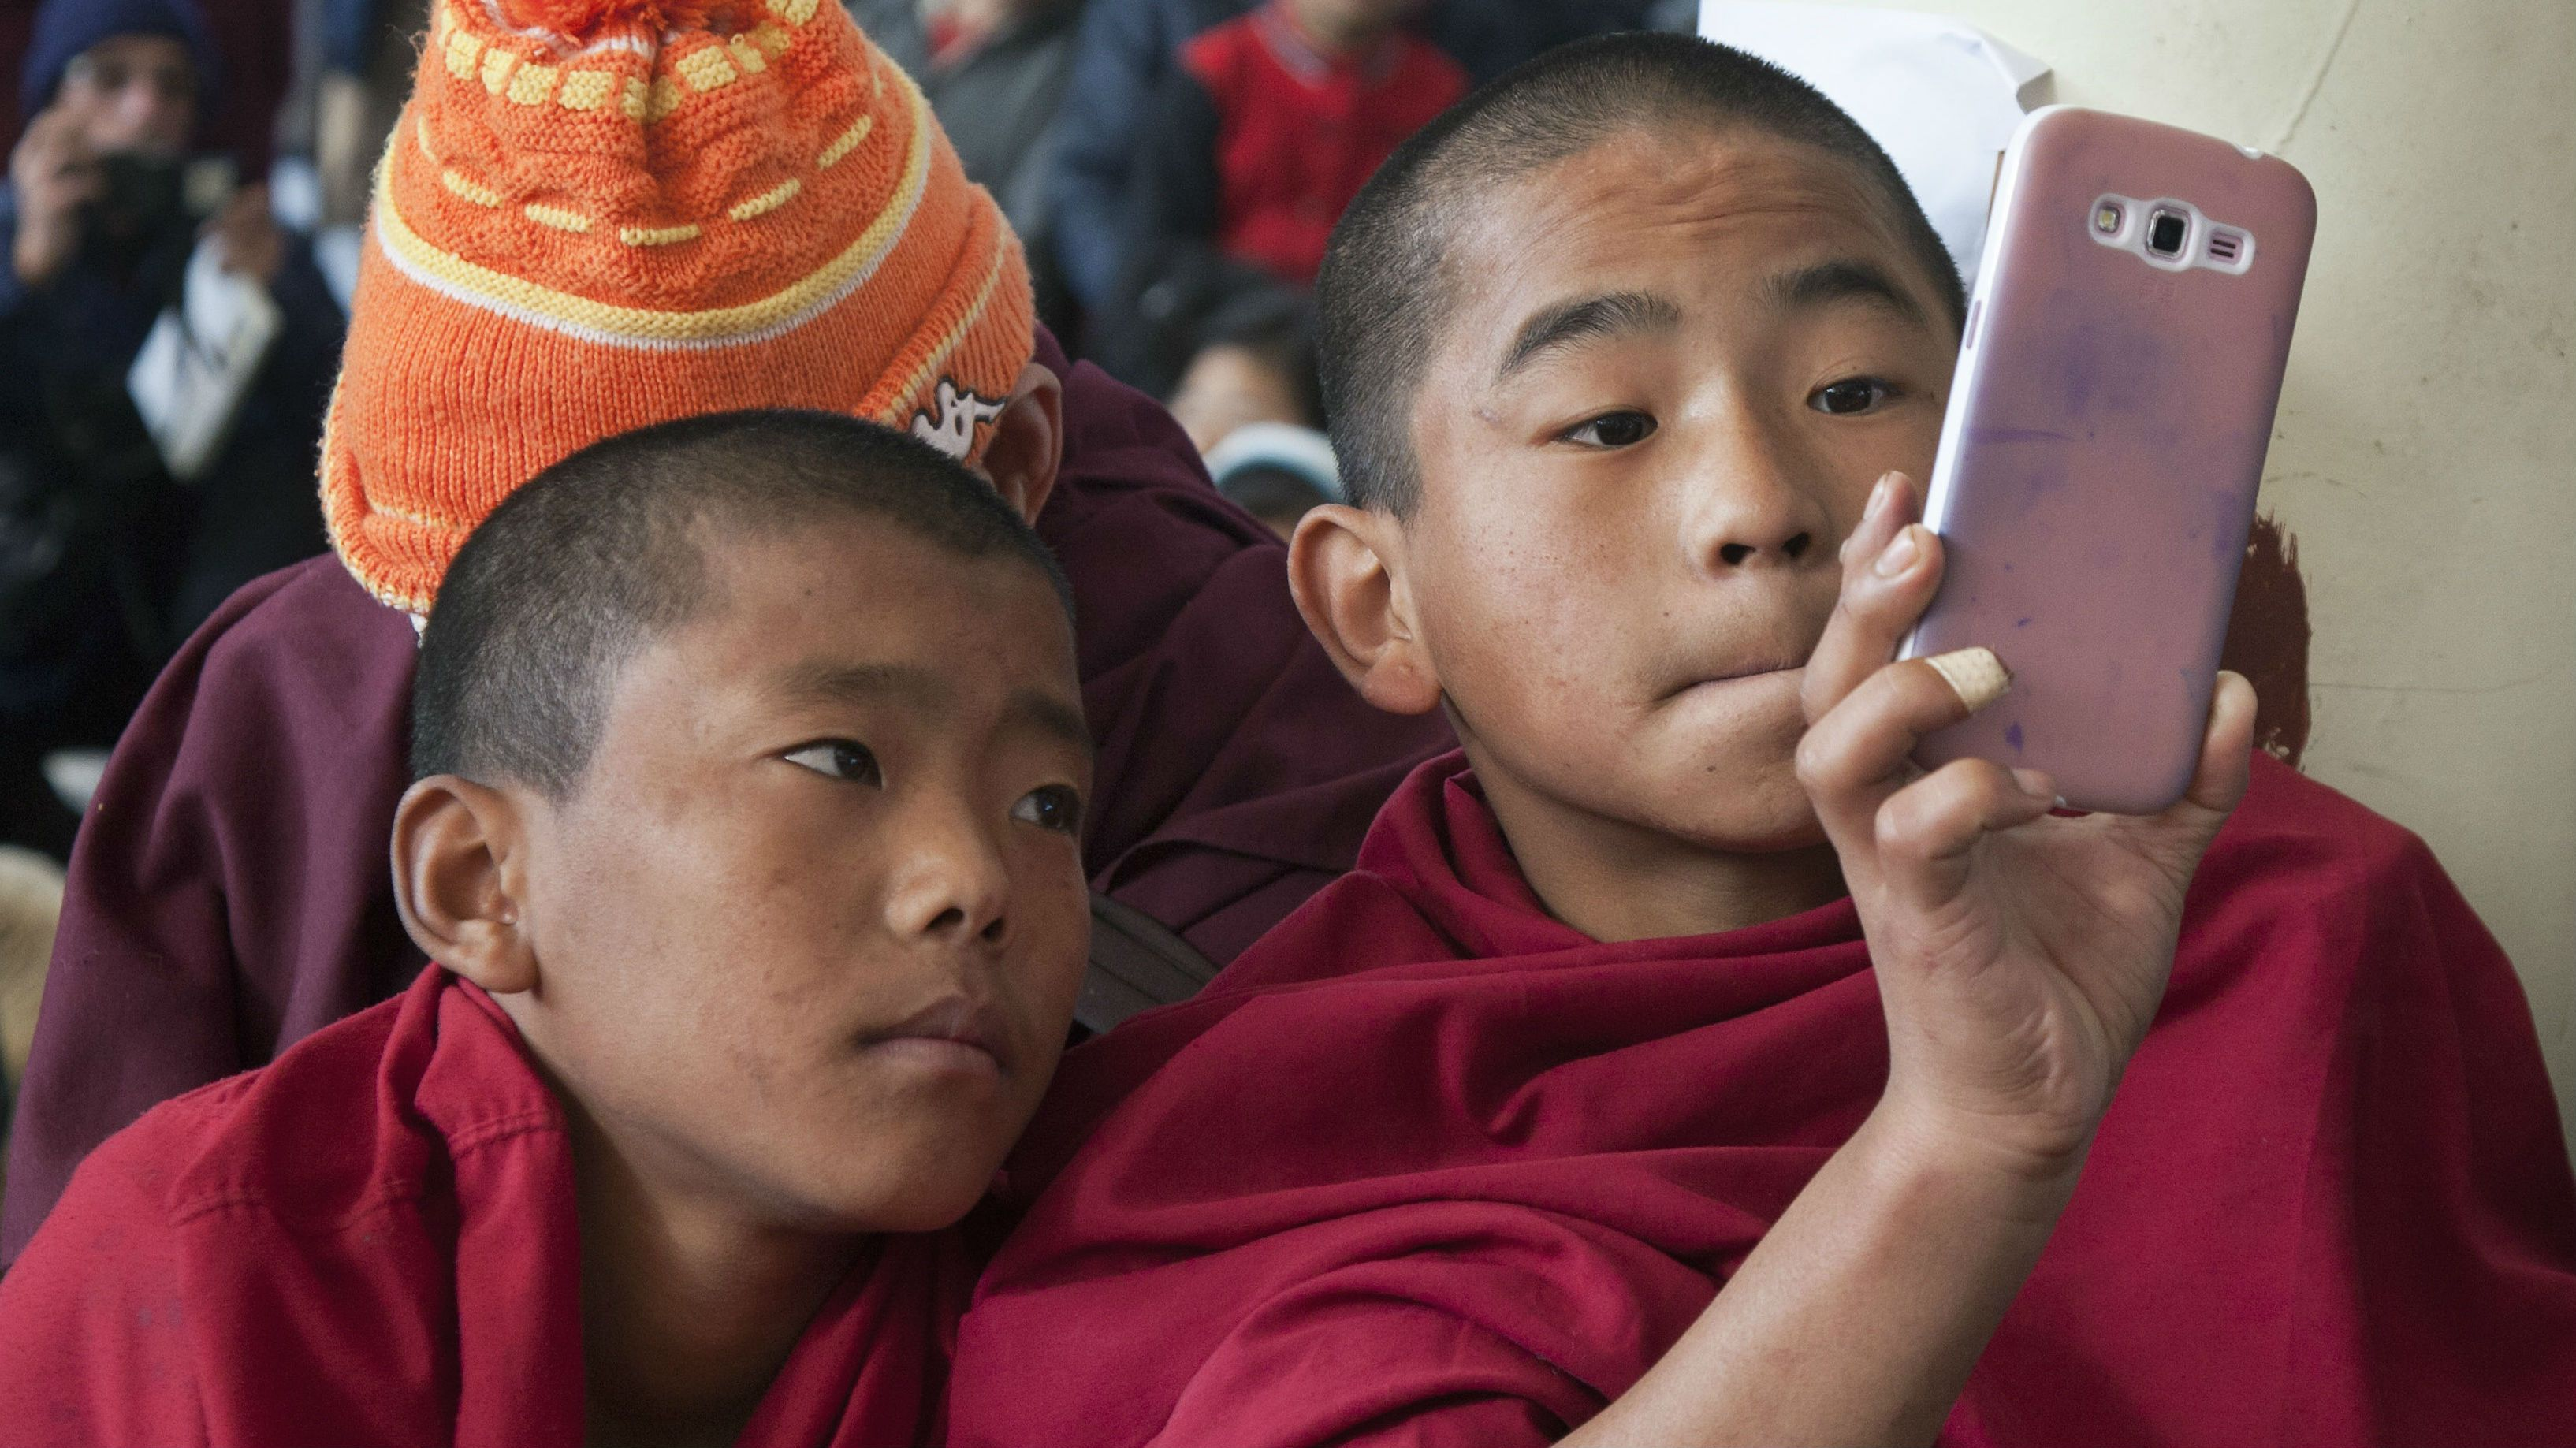 A novice exile Tibetan Buddhist monk uses his mobile phone camera as Tibetans gather to mark the 25th anniversary of their spiritual leader the Dalai Lama receiving the Nobel Peace Prize, at the Tsuglakhang temple in Dharmsala, Wednesday, Dec.10, 2014. The Tibetan leader was awarded the Peace Prize in 1989 for his commitment to non-violence. (AP Photo/Ashwini Bhatia)